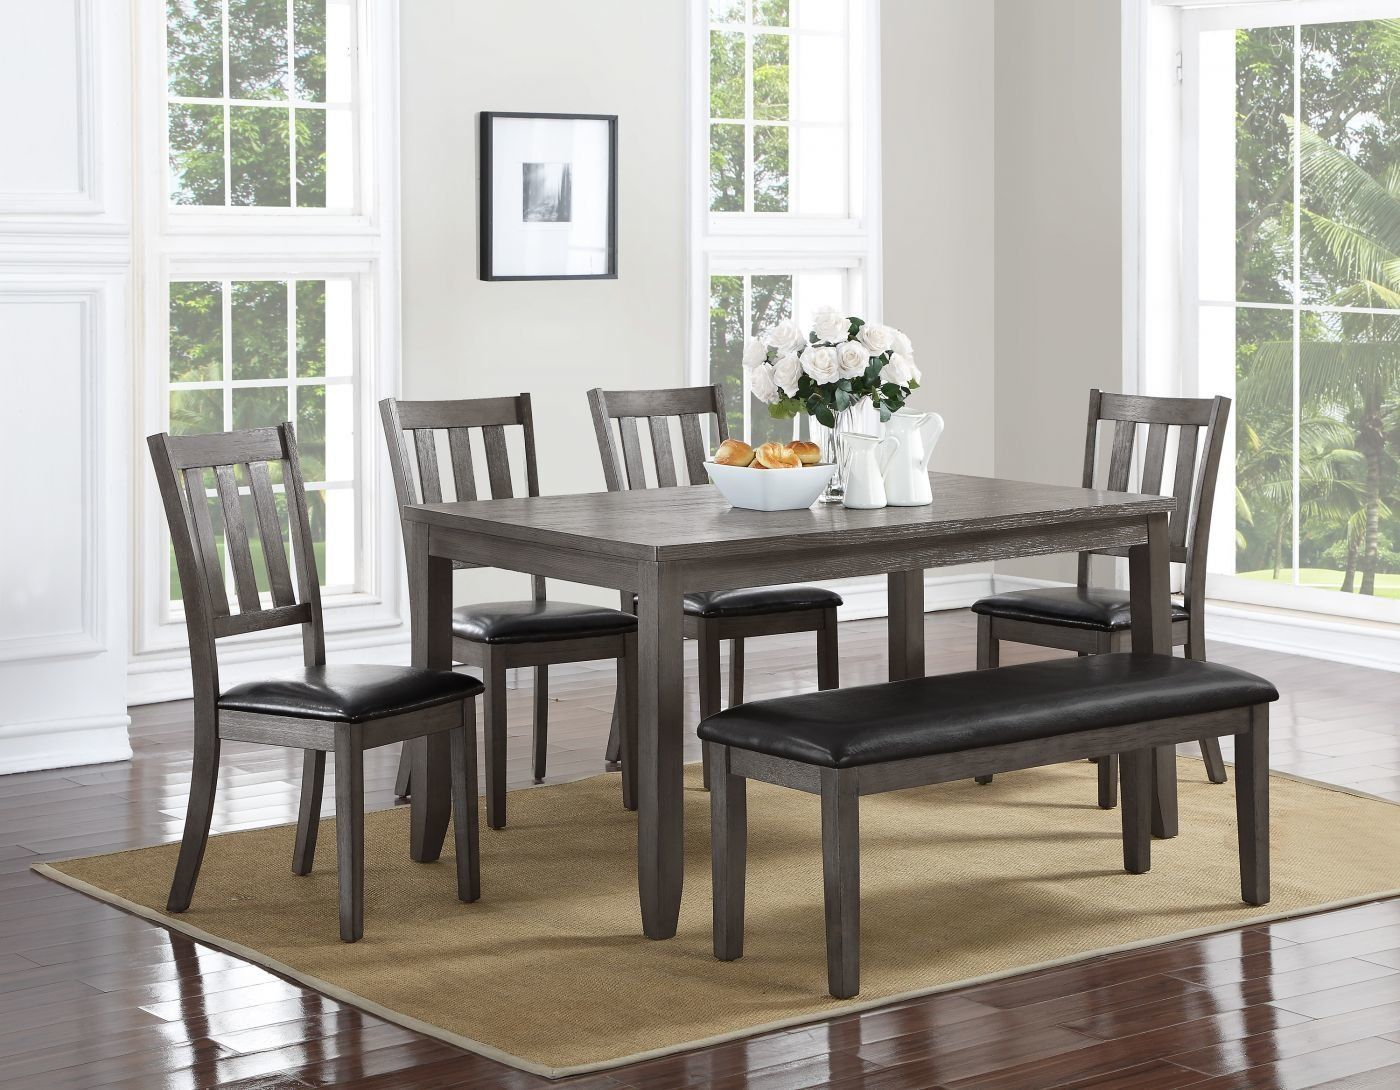 Cosgrove Grey 5 Piece Dinette Set 459 00 Stylish Dining Room